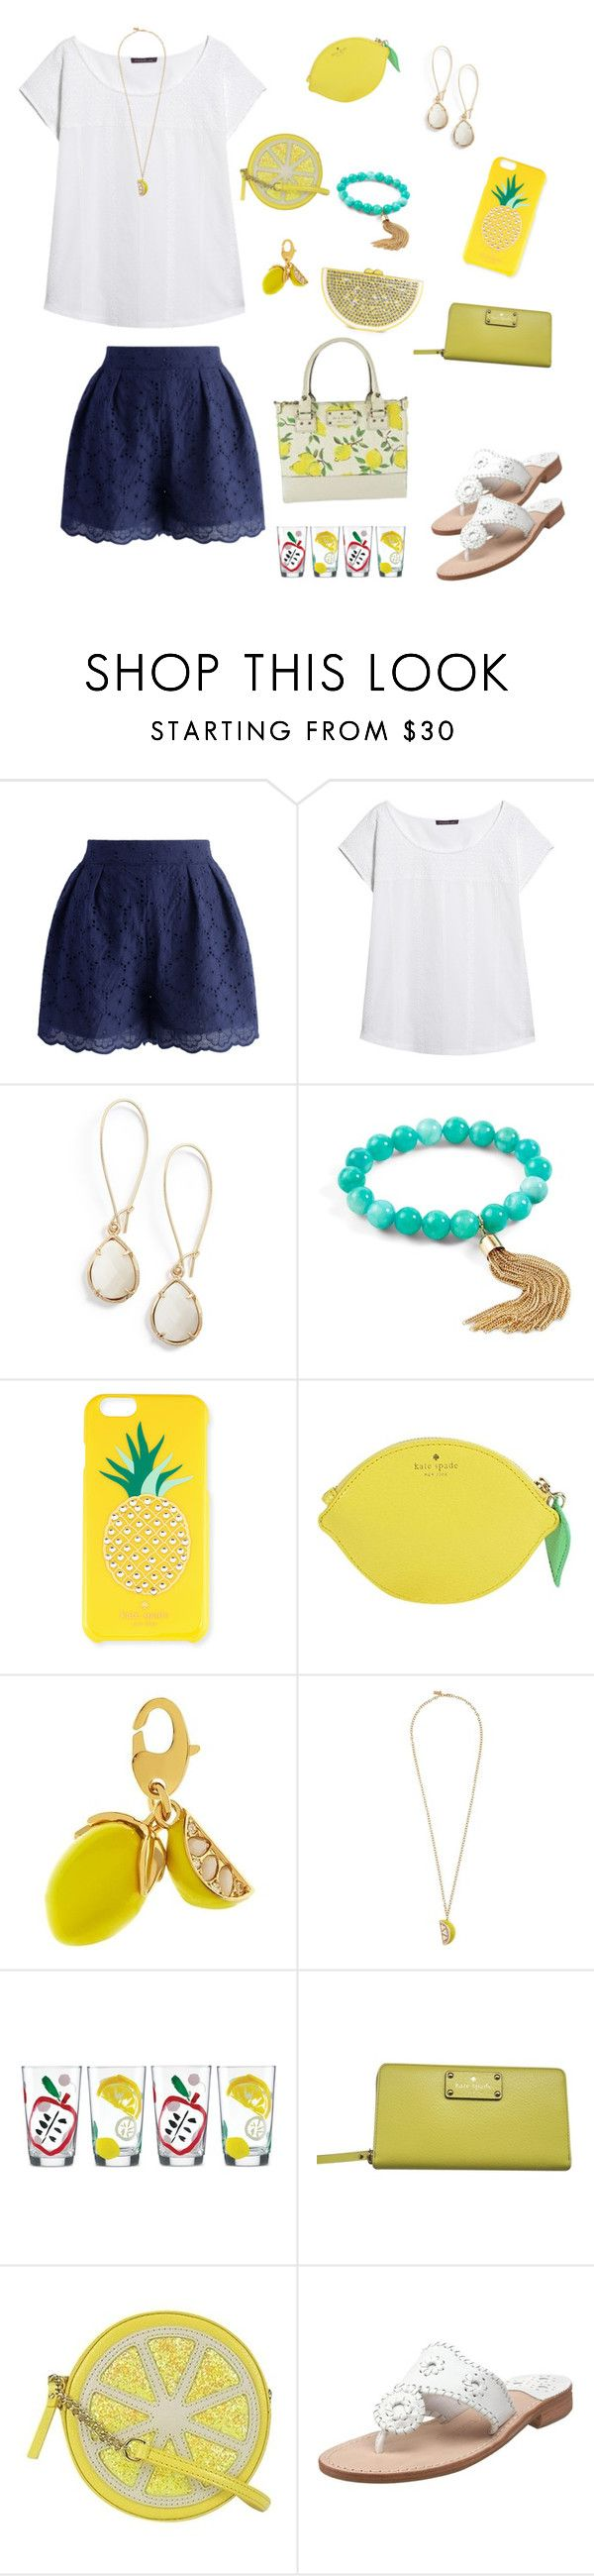 """""""lemons🍋"""" by prep29 ❤ liked on Polyvore featuring Chicwish, Violeta by Mango, Kendra Scott, Vera Bradley, Kate Spade and Jack Rogers"""